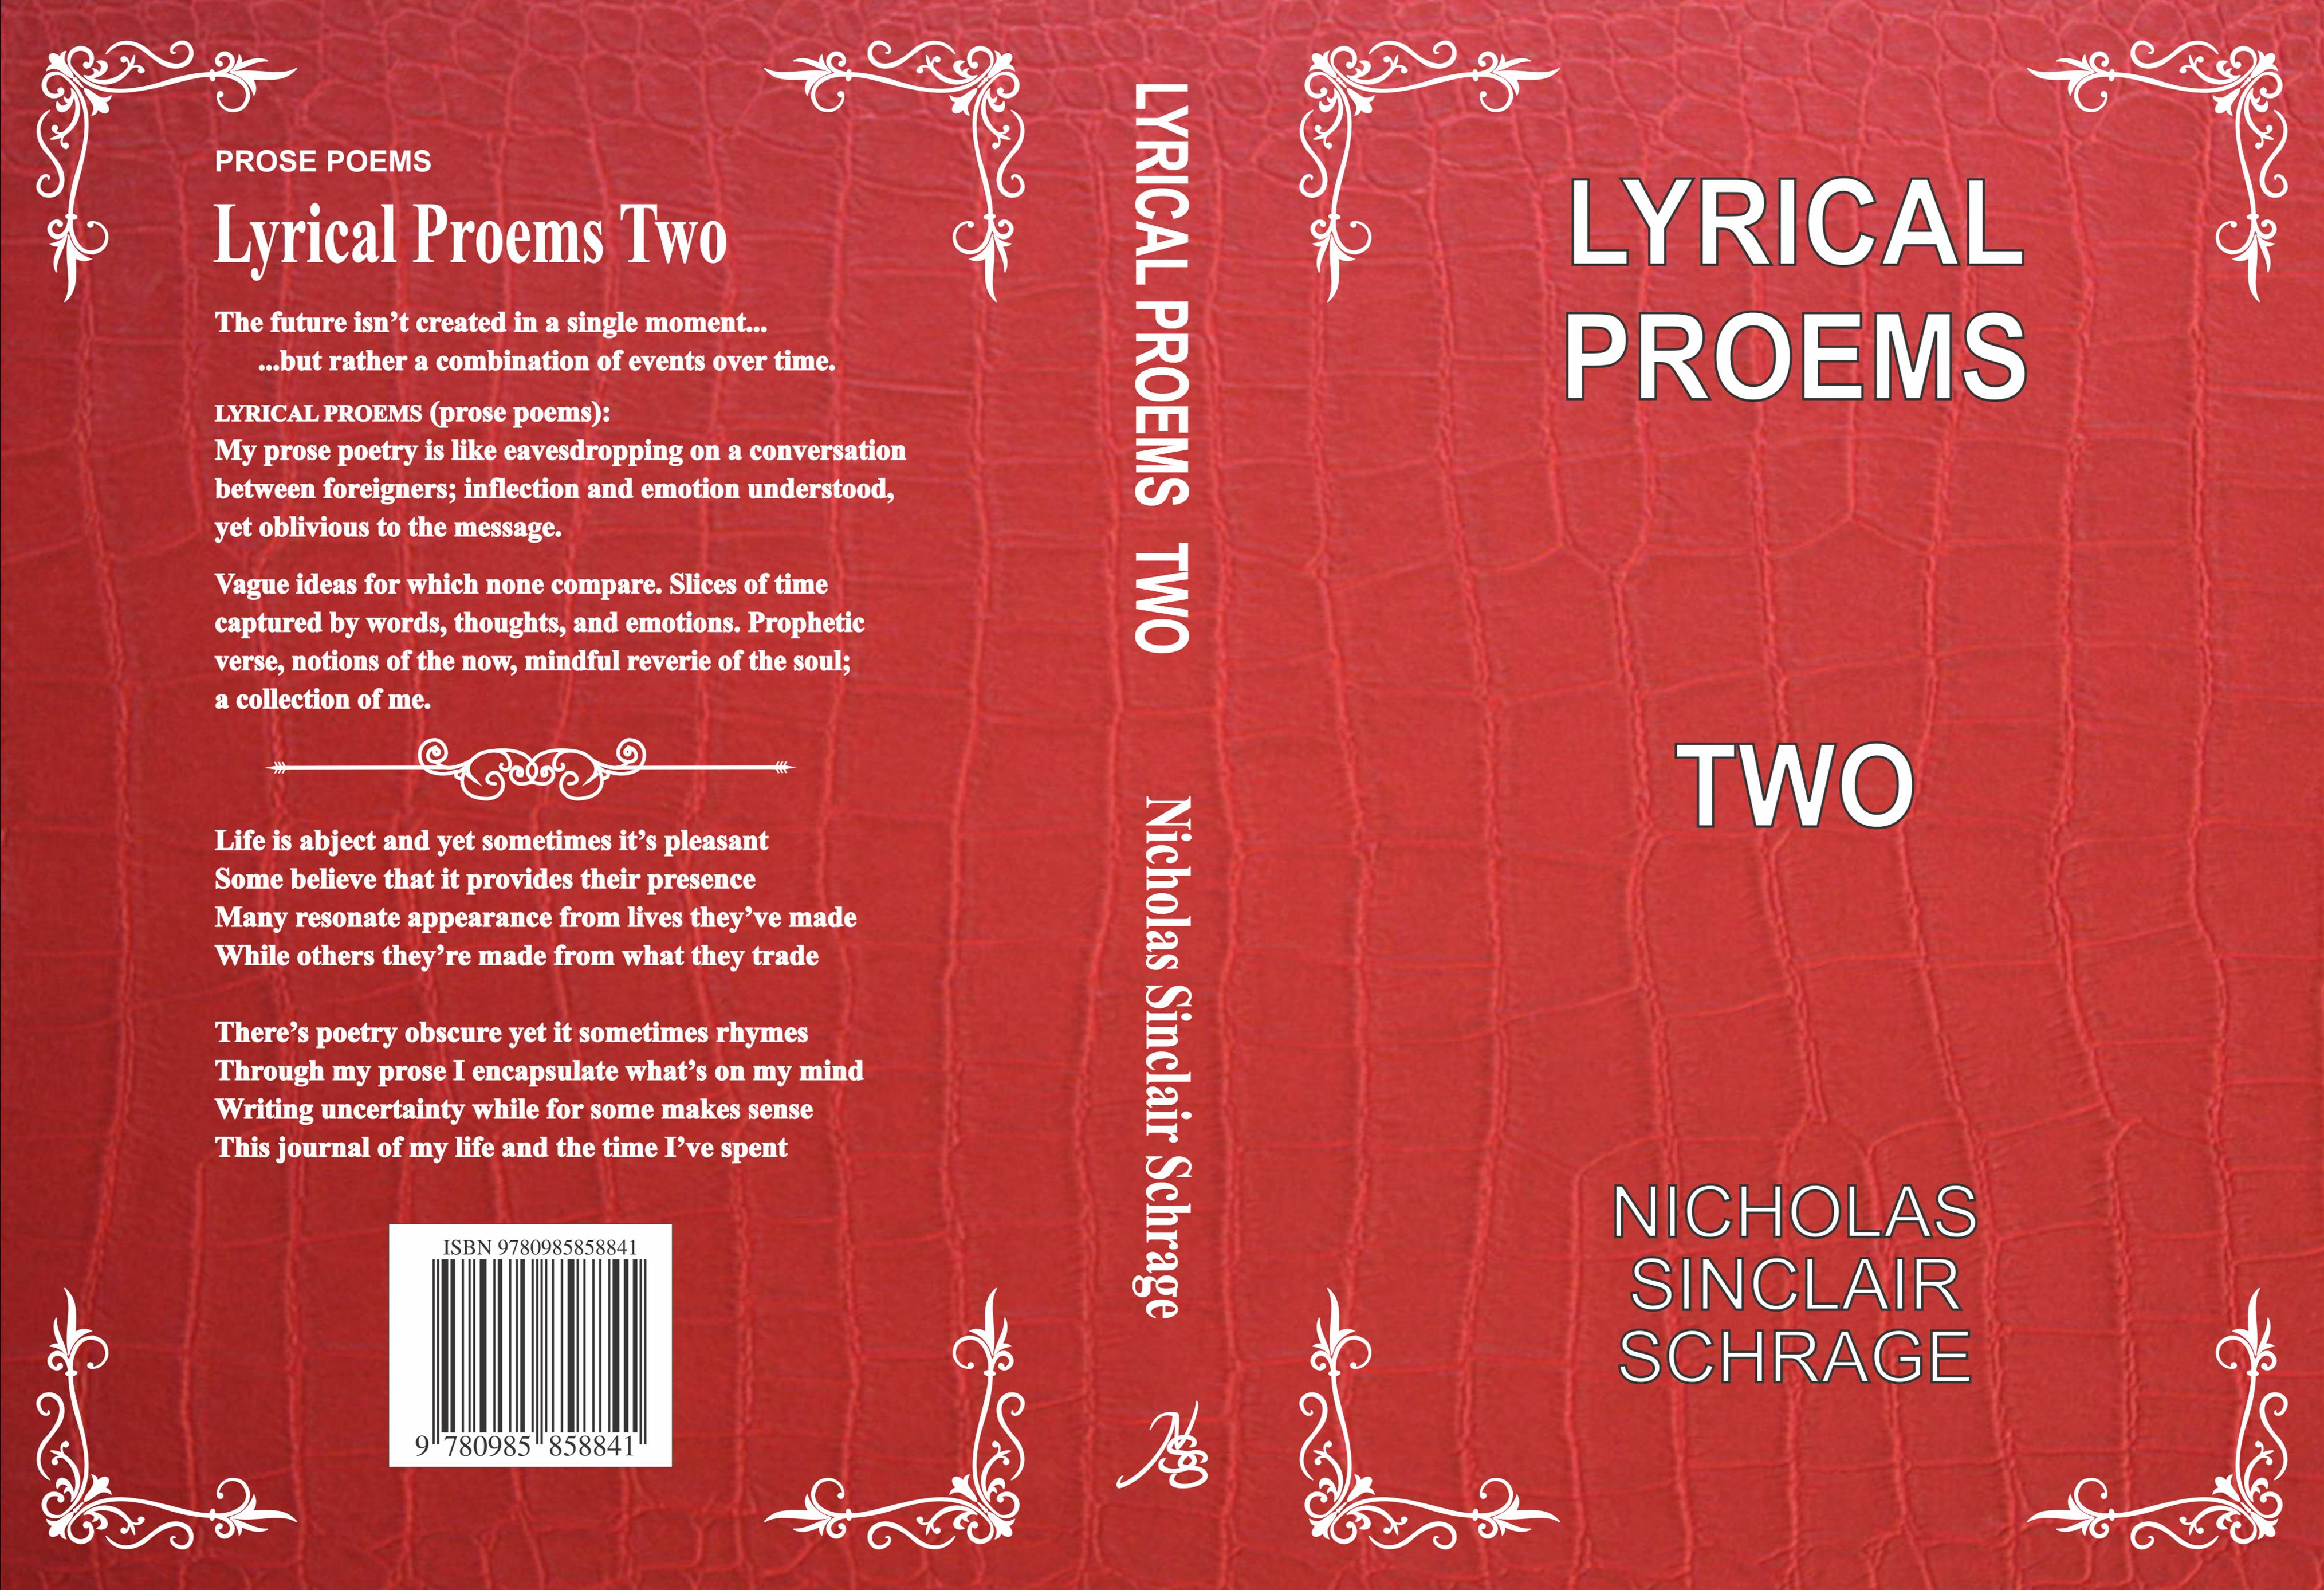 Lyrical Proems Two cover image